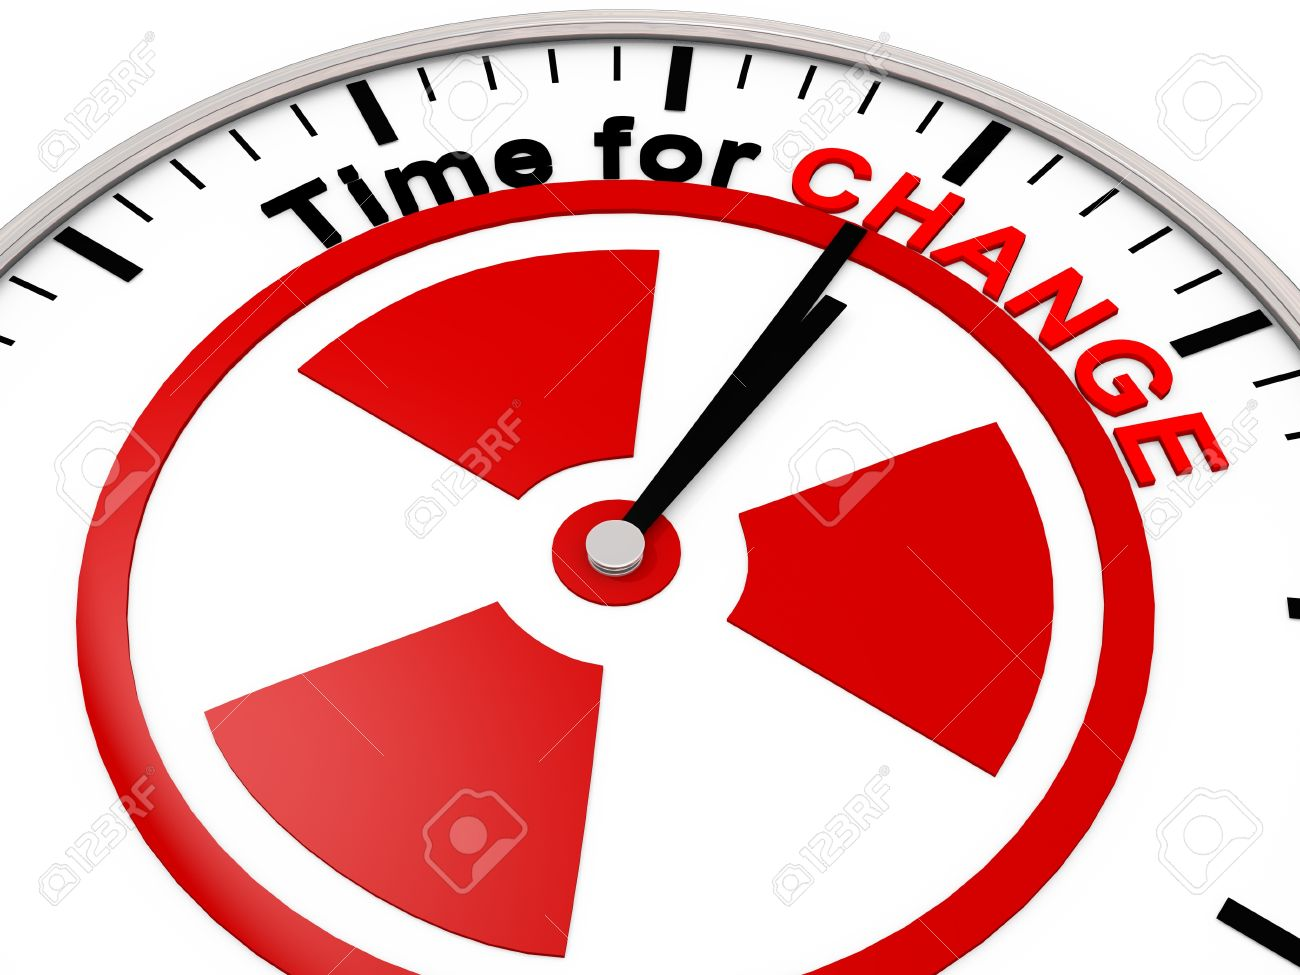 Time for Change on a Clock Stock Photo - 9309645